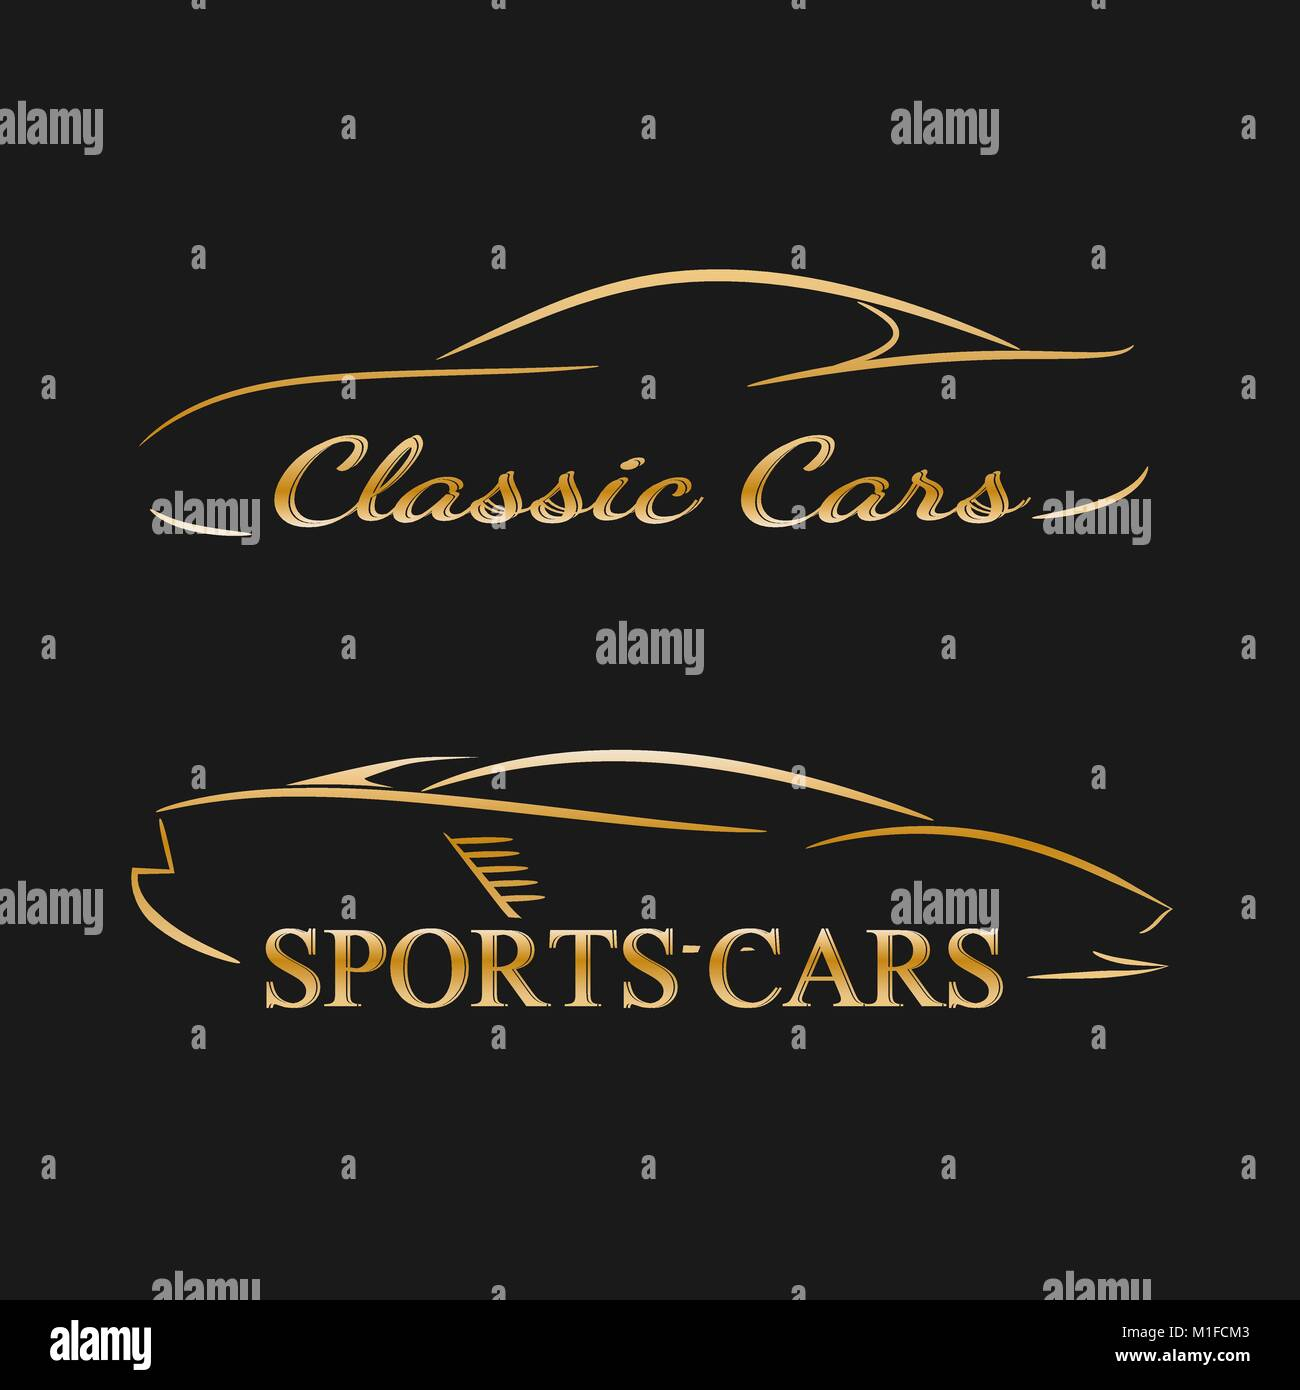 Golden Car Silhouettes On A Dark Background Luxury Cars Vector